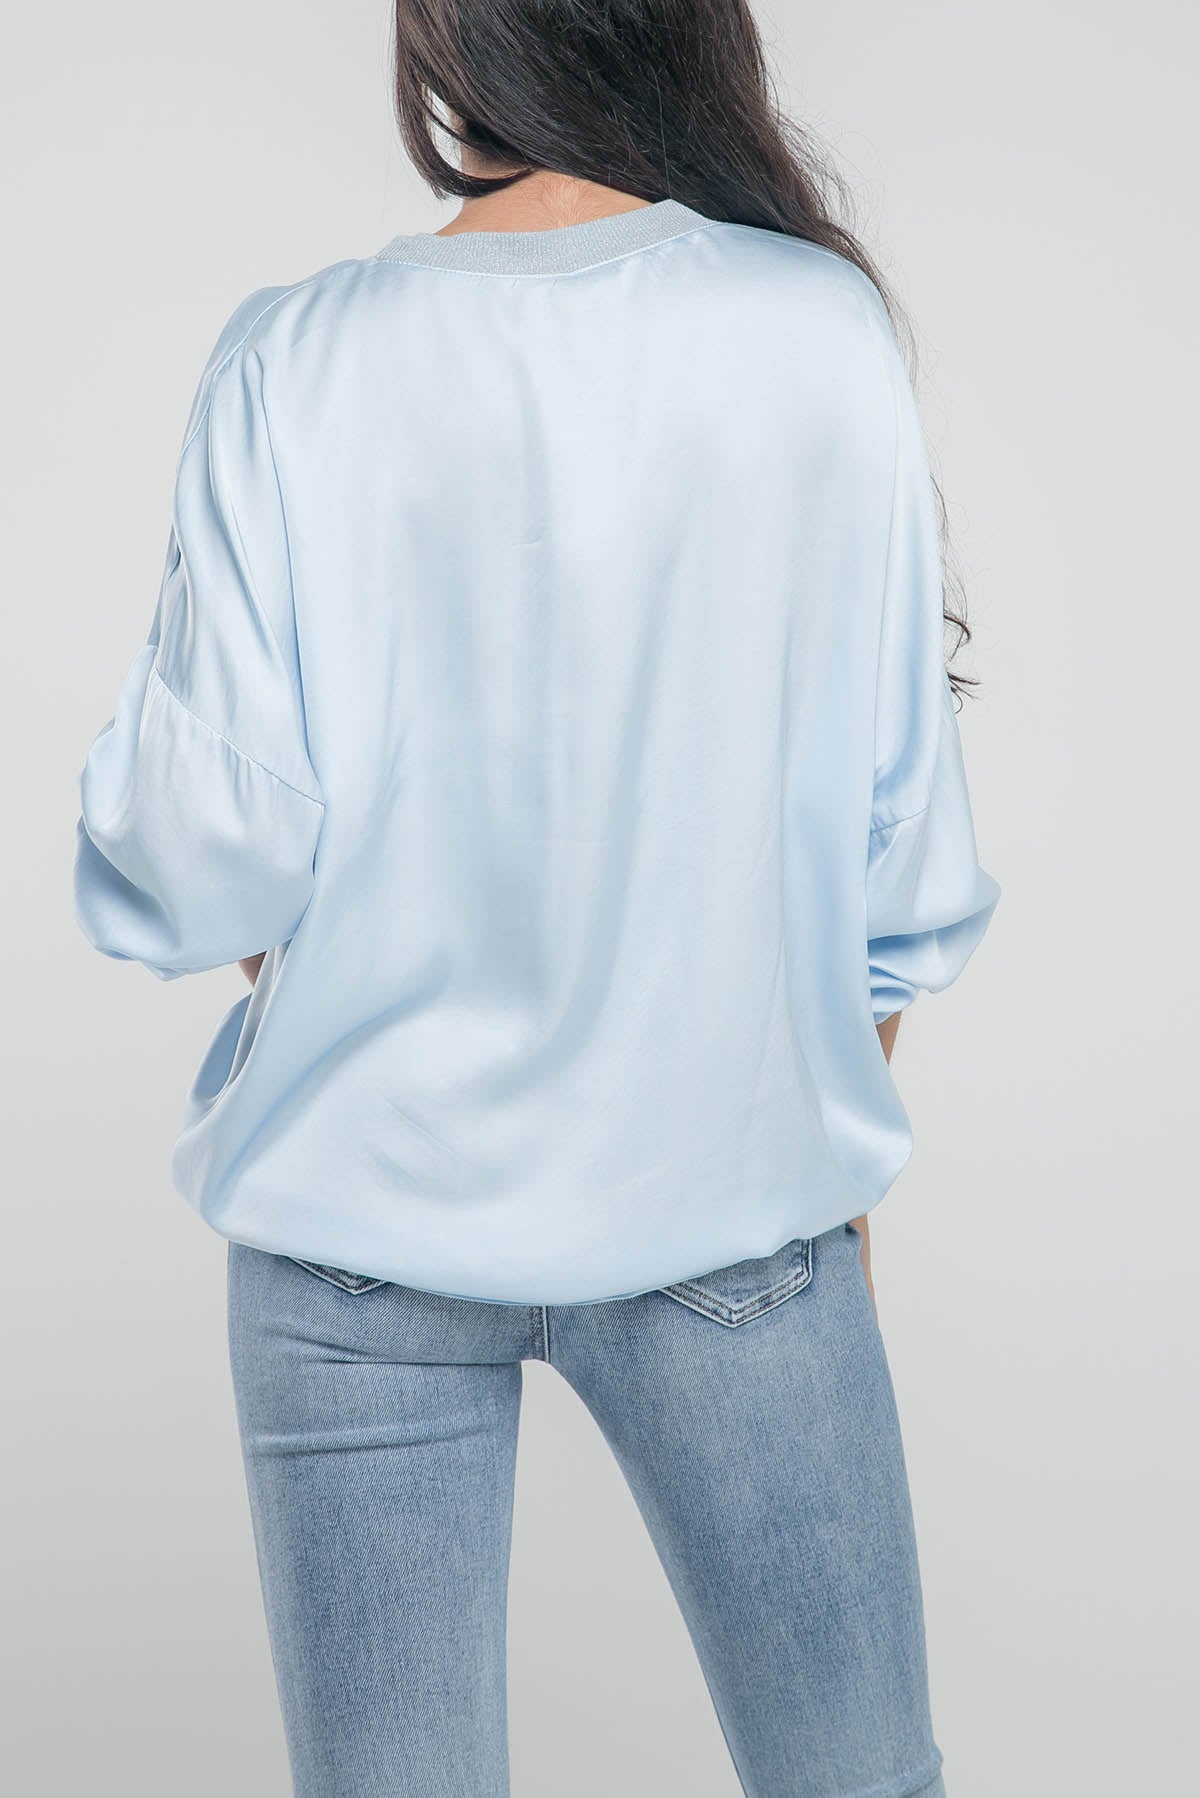 CAMISETA SATIN CUELLO LUREX